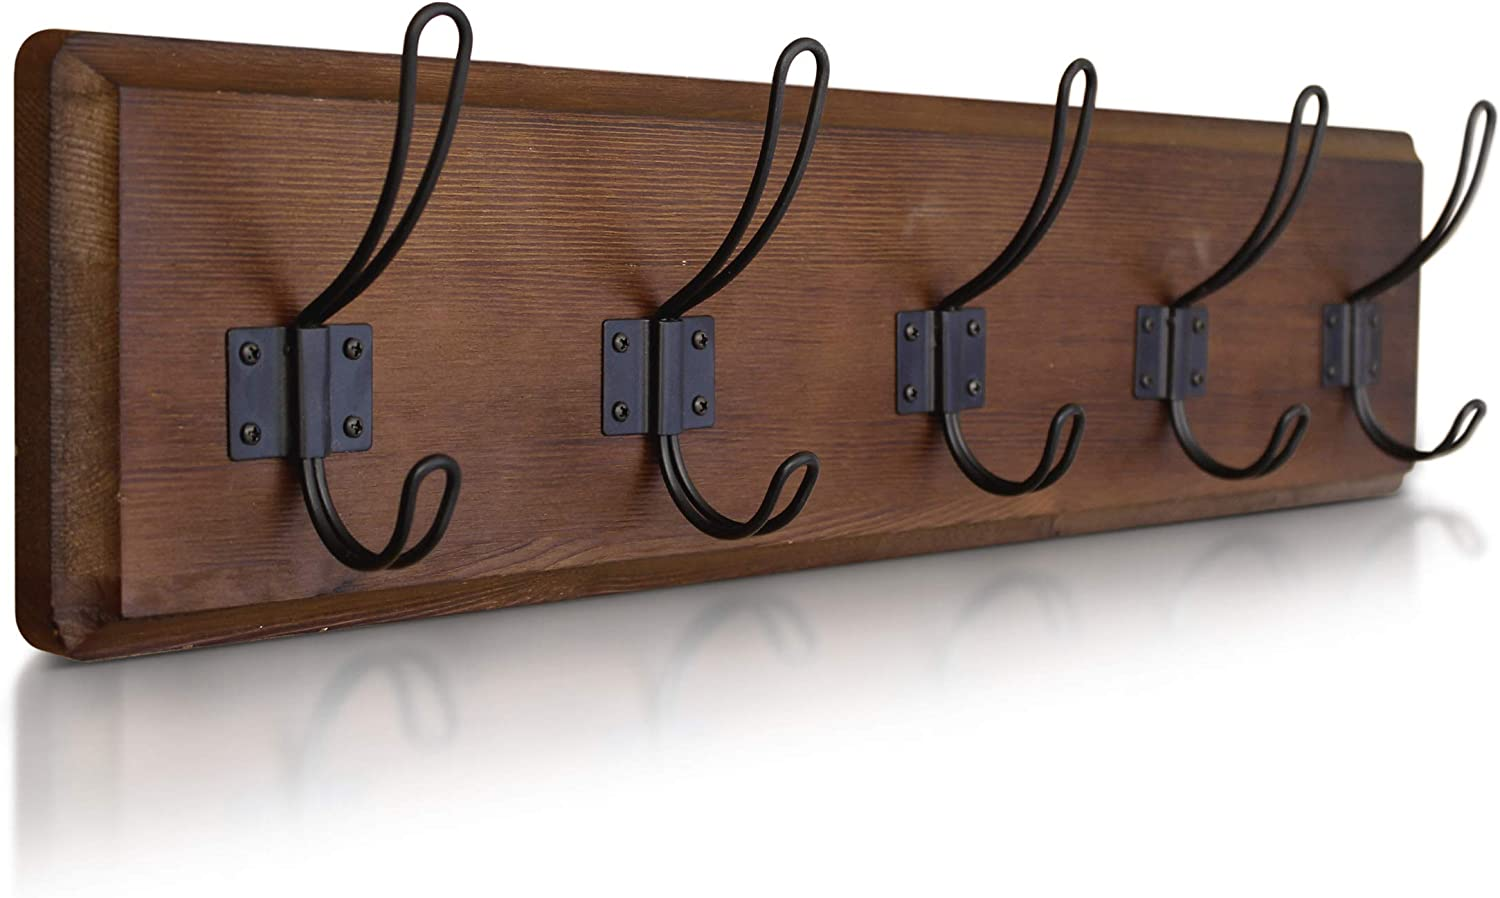 """HBCY Creations Rustic Coat Rack - Wall Mounted Wooden 24"""" Entryway Coat Hooks - 5 Rustic Hooks, Solid Pine Wood. Perfect Touch for Your Entryway, Kitchen, Bathroom. (Classic Brown)"""